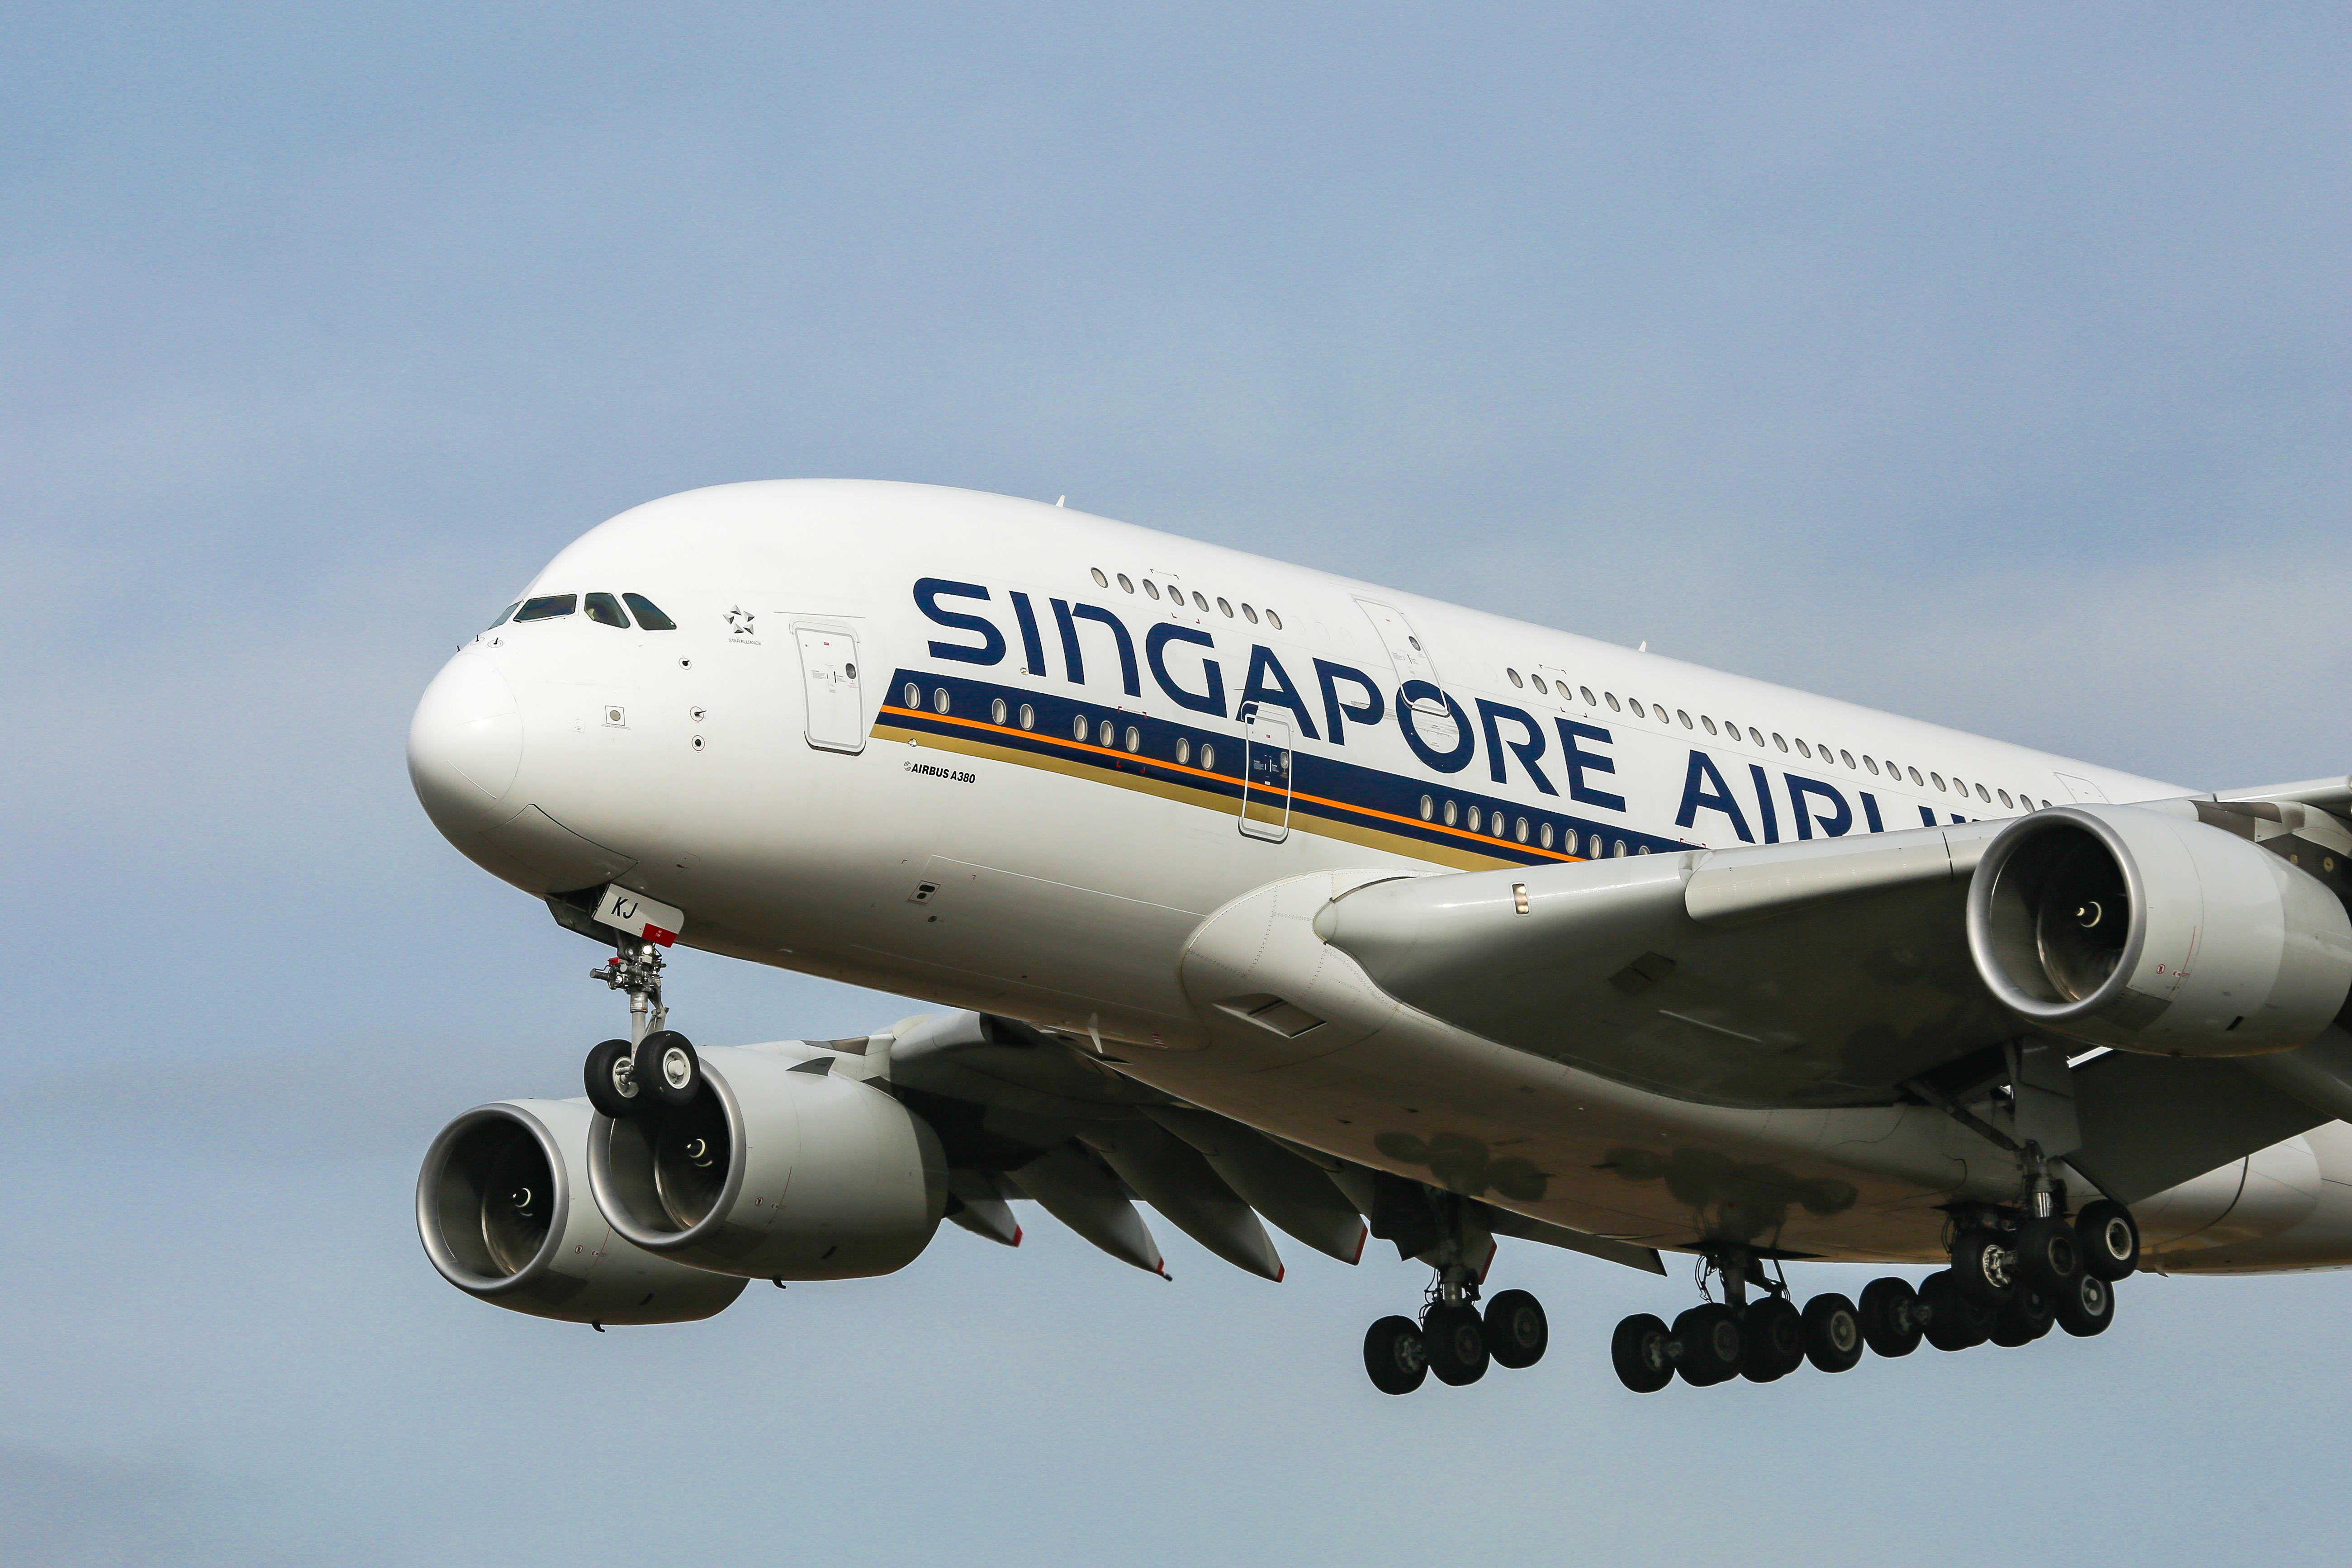 Airlines divert, cancel flights as Middle East tensions spike